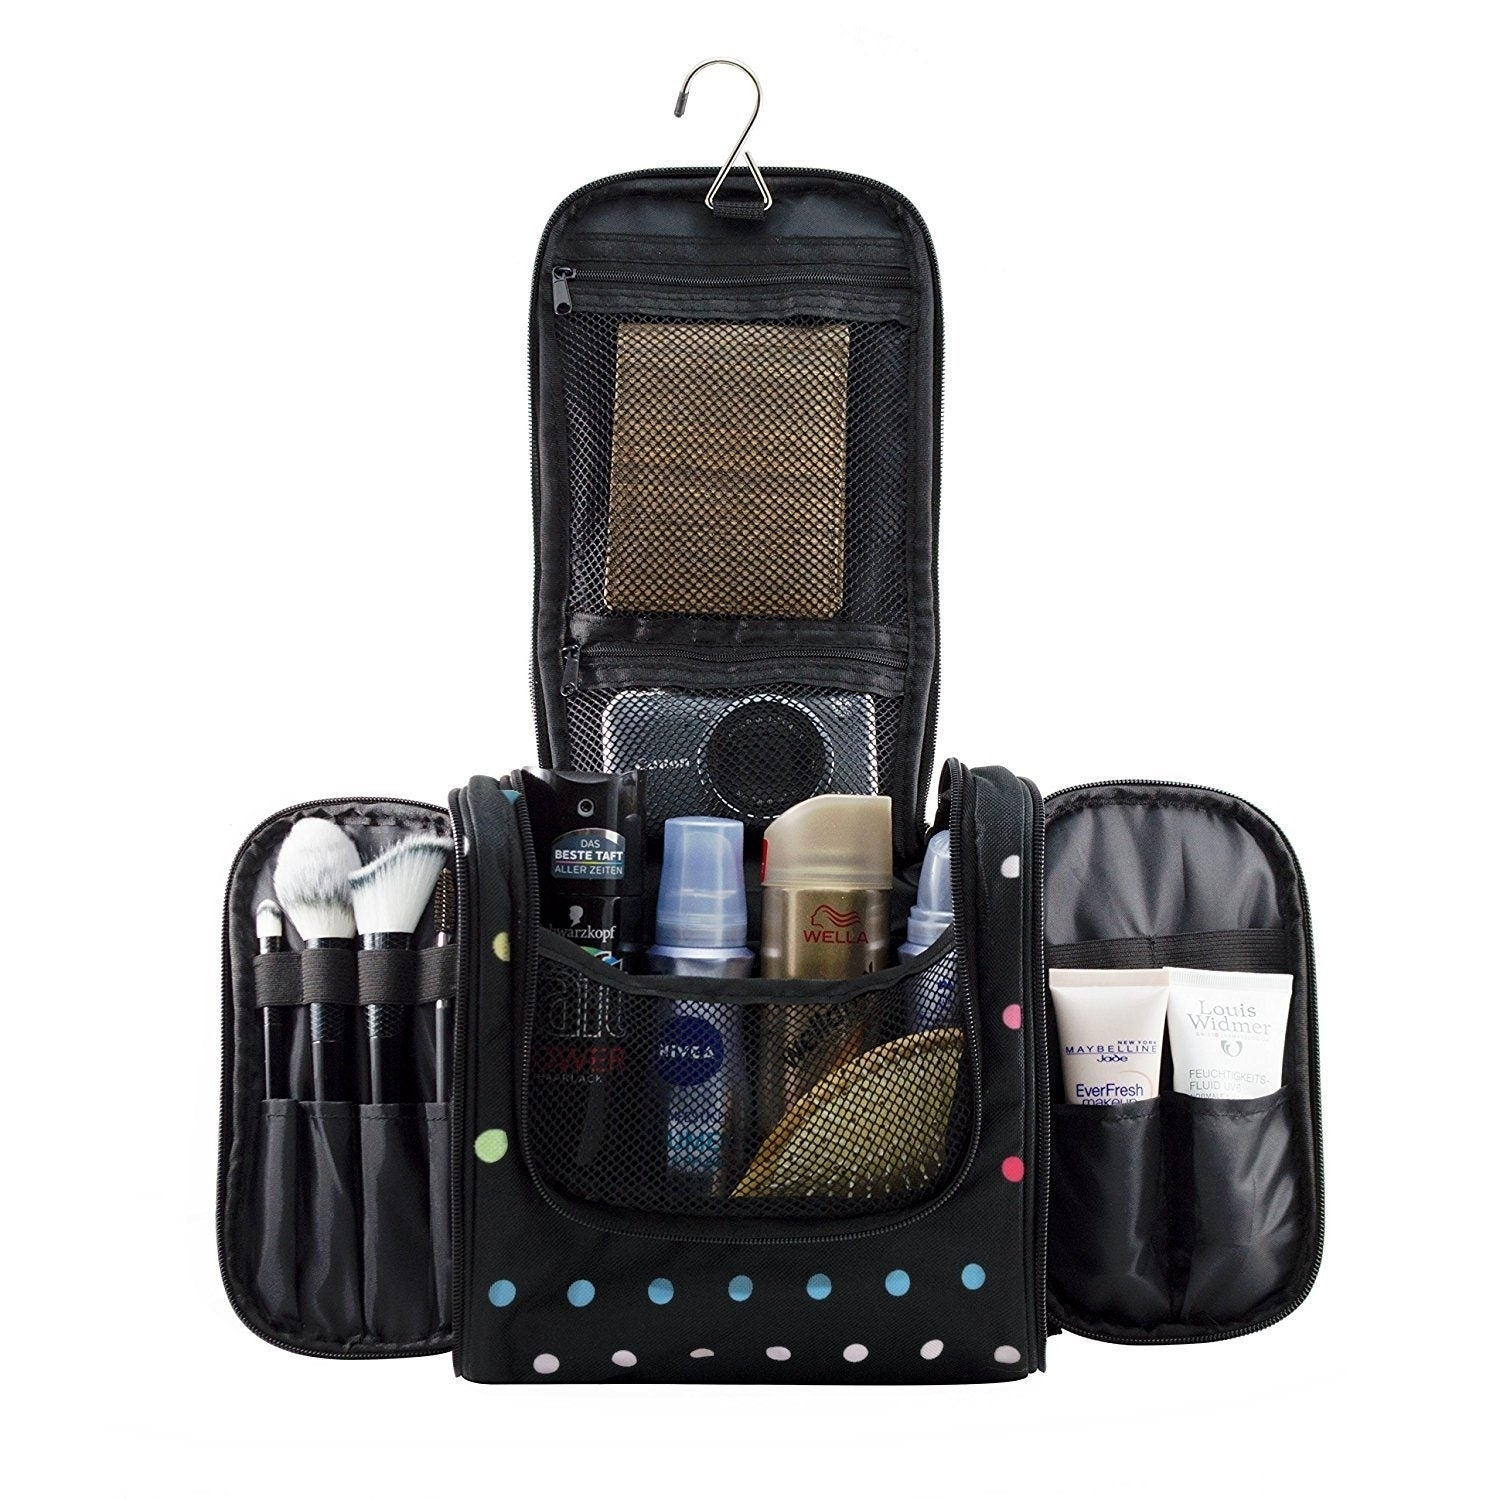 Hanging Makeup Cosmetic Bag Large Portable Travel Toiletry Organizer Free Shipping On Orders Over 45 18901256